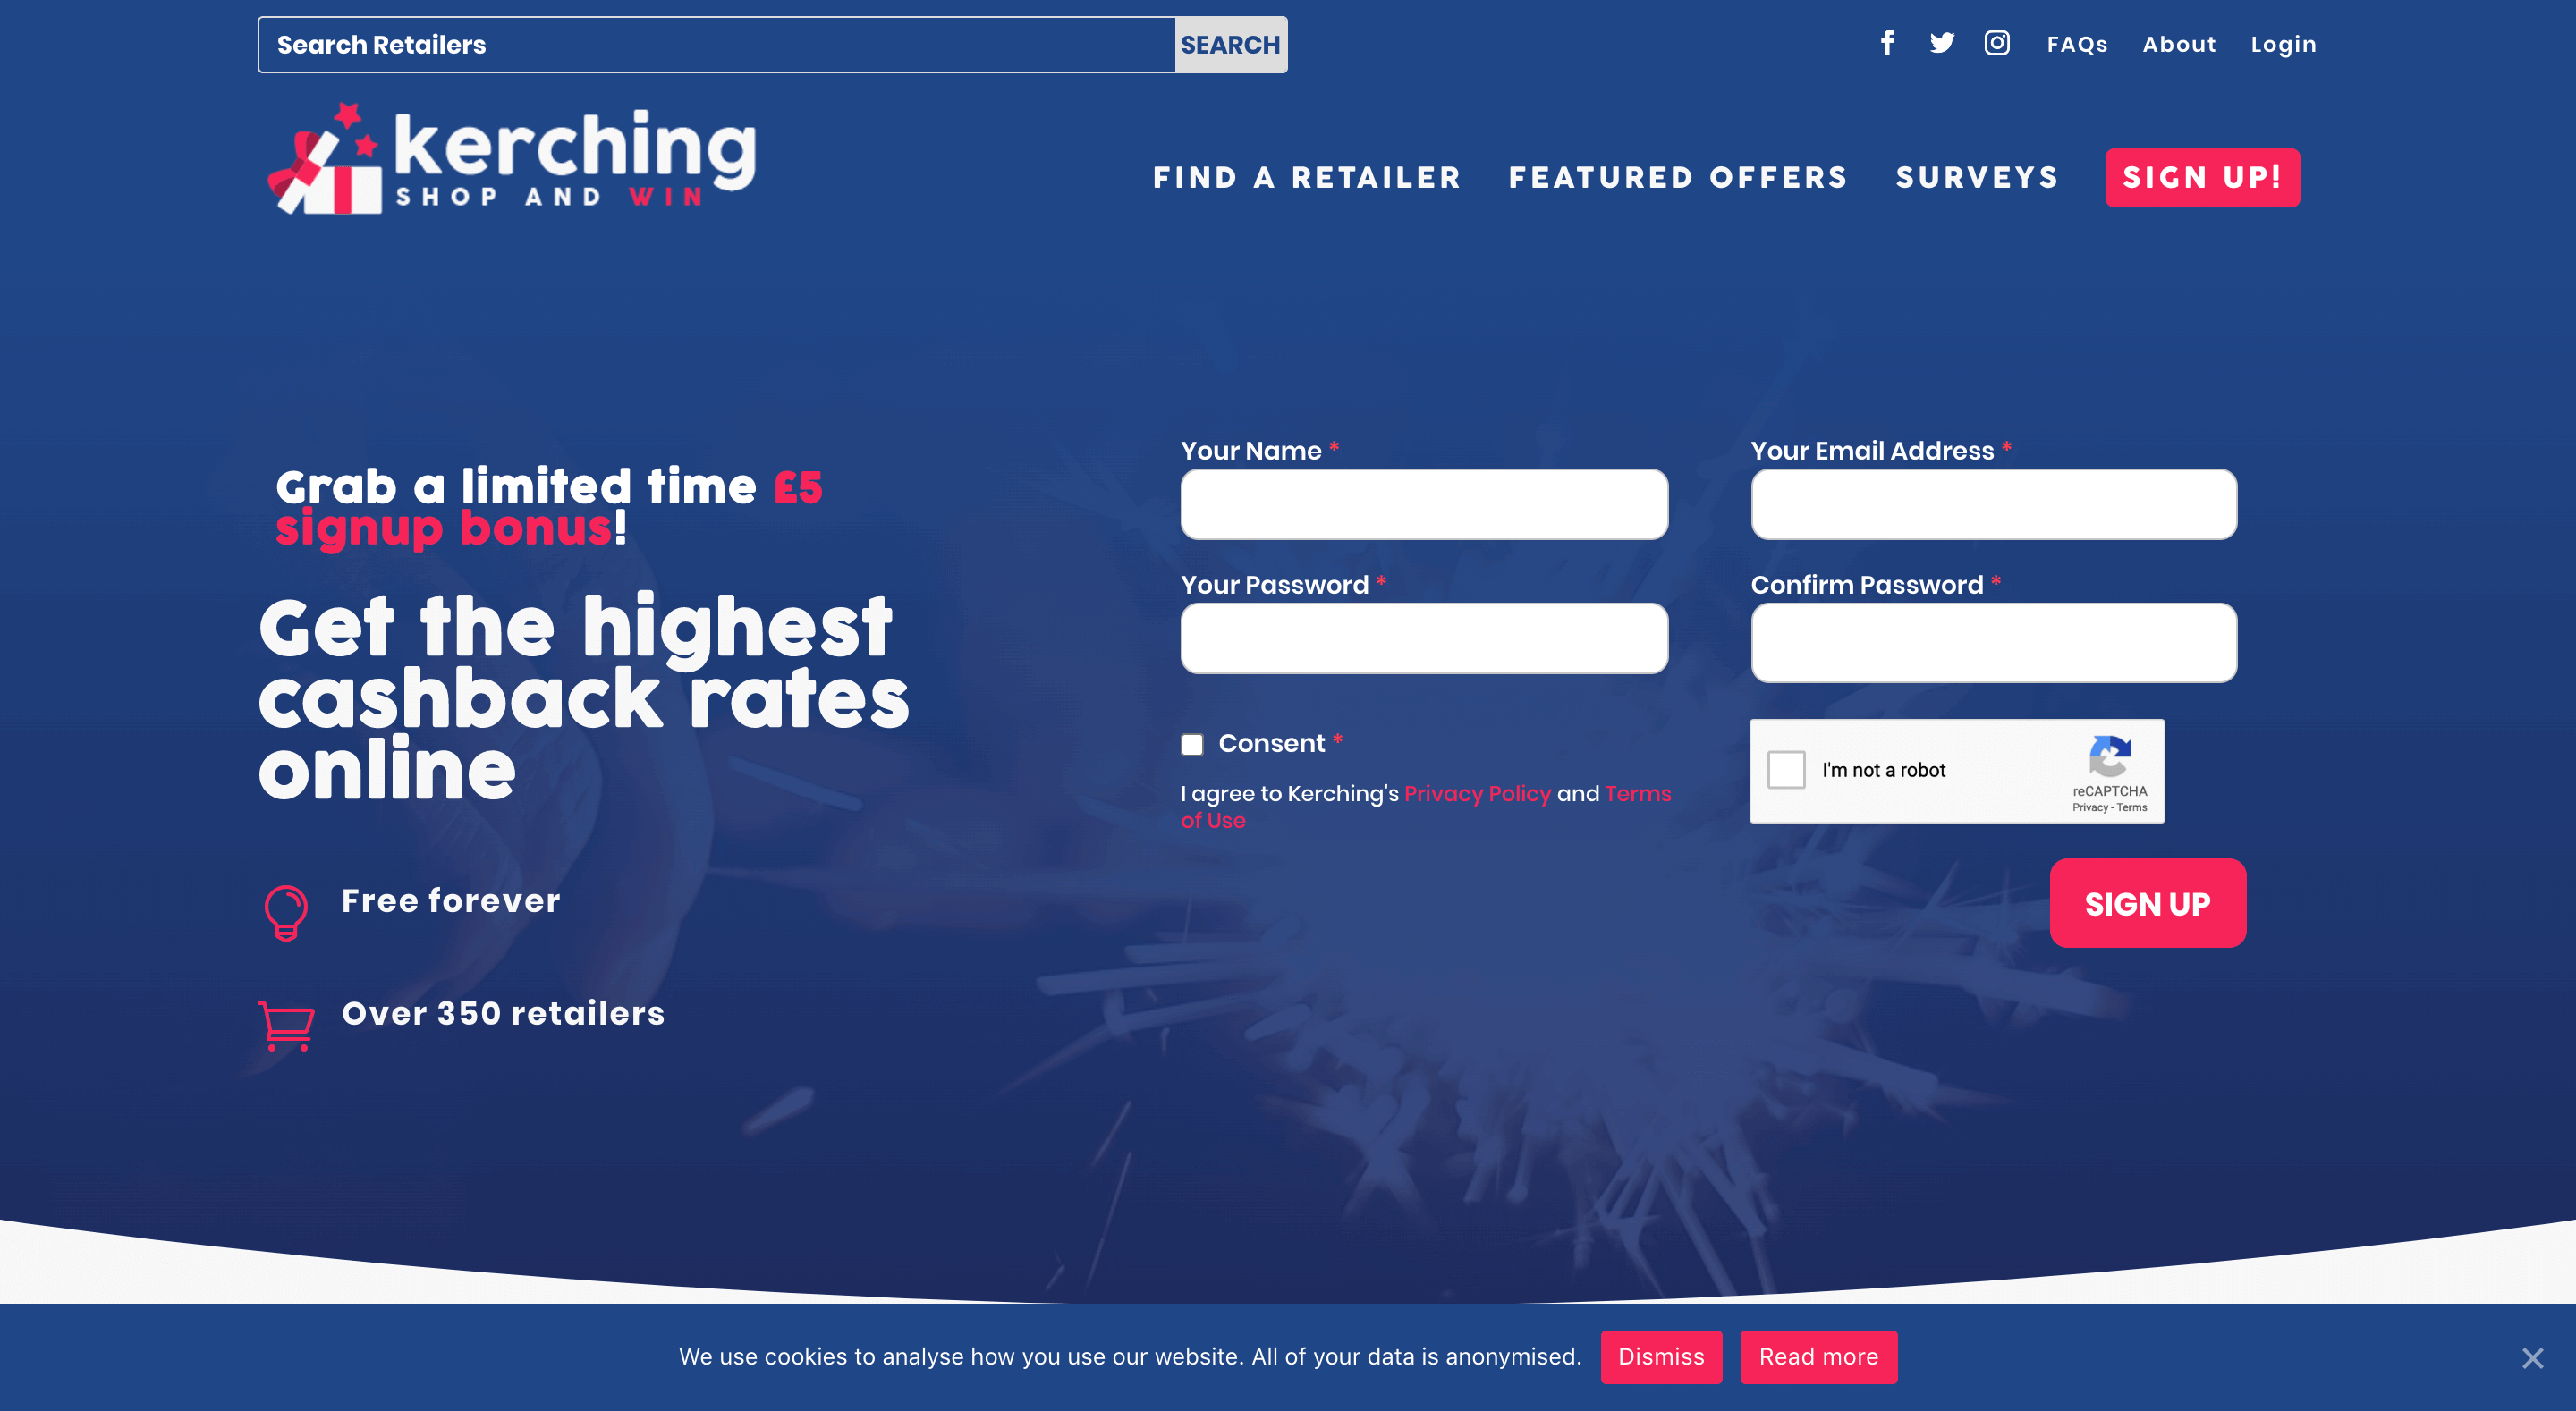 Kerching and Win website